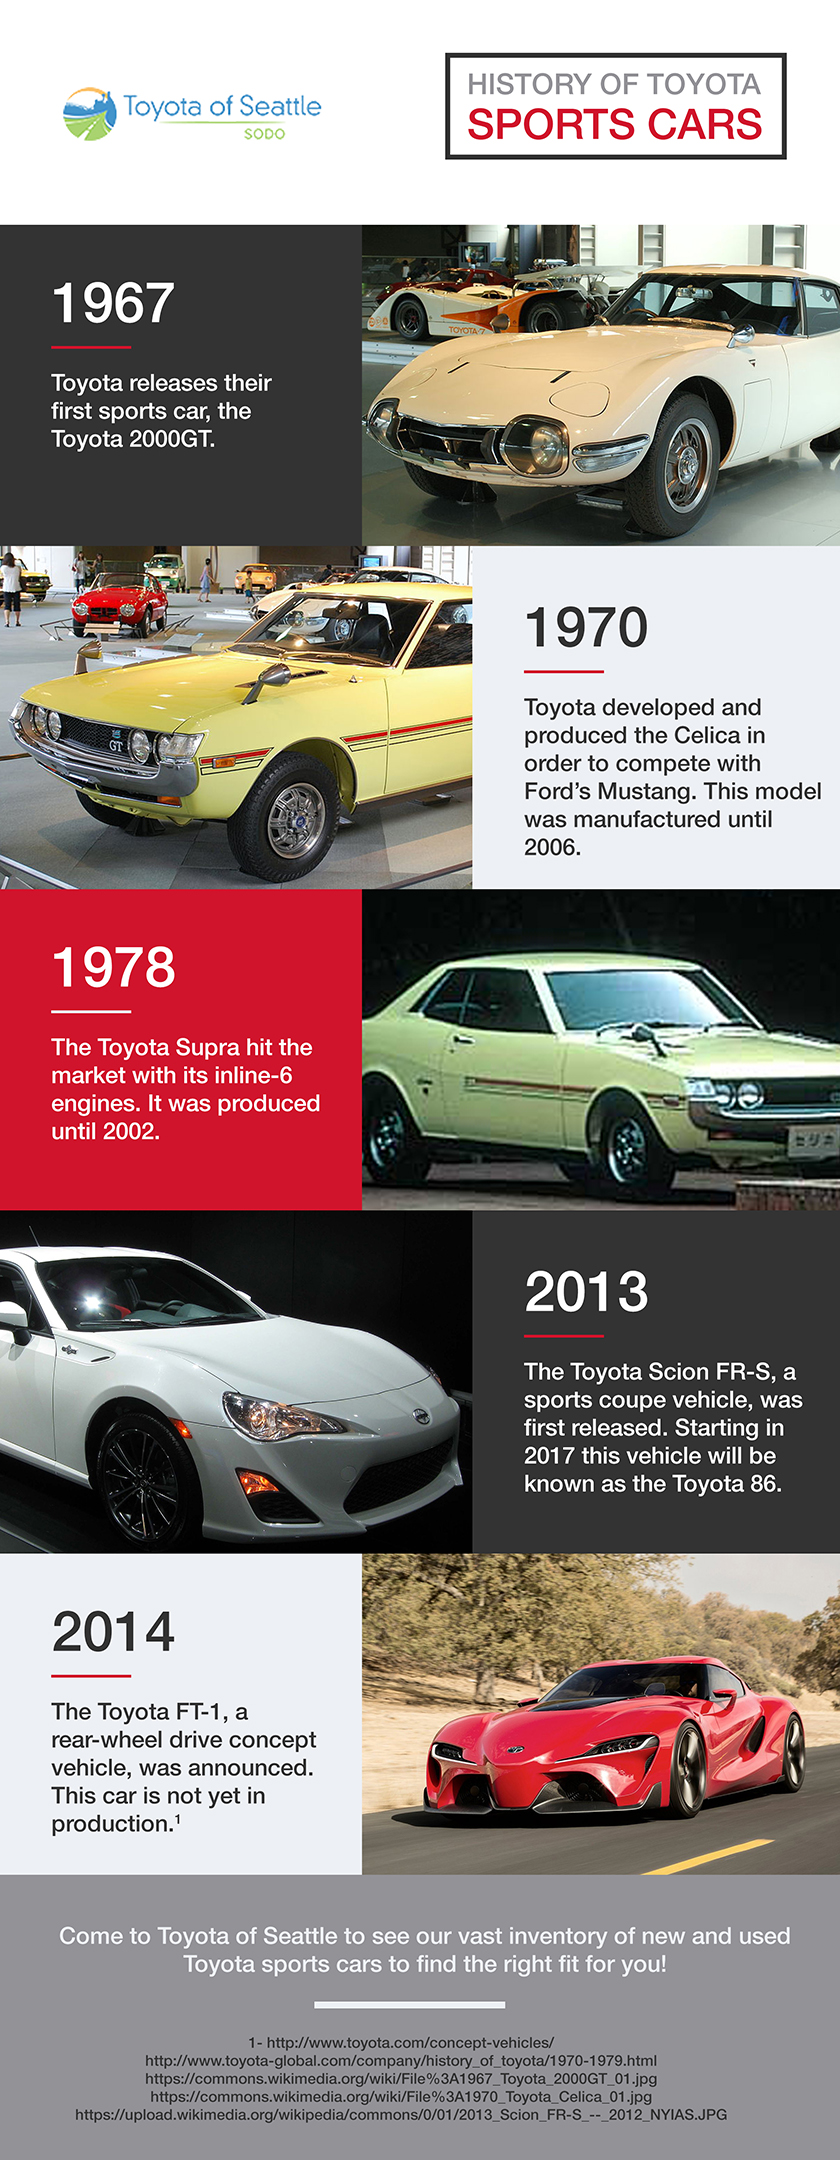 Toyota sports car history infographic come visit your seattle toyota dealer